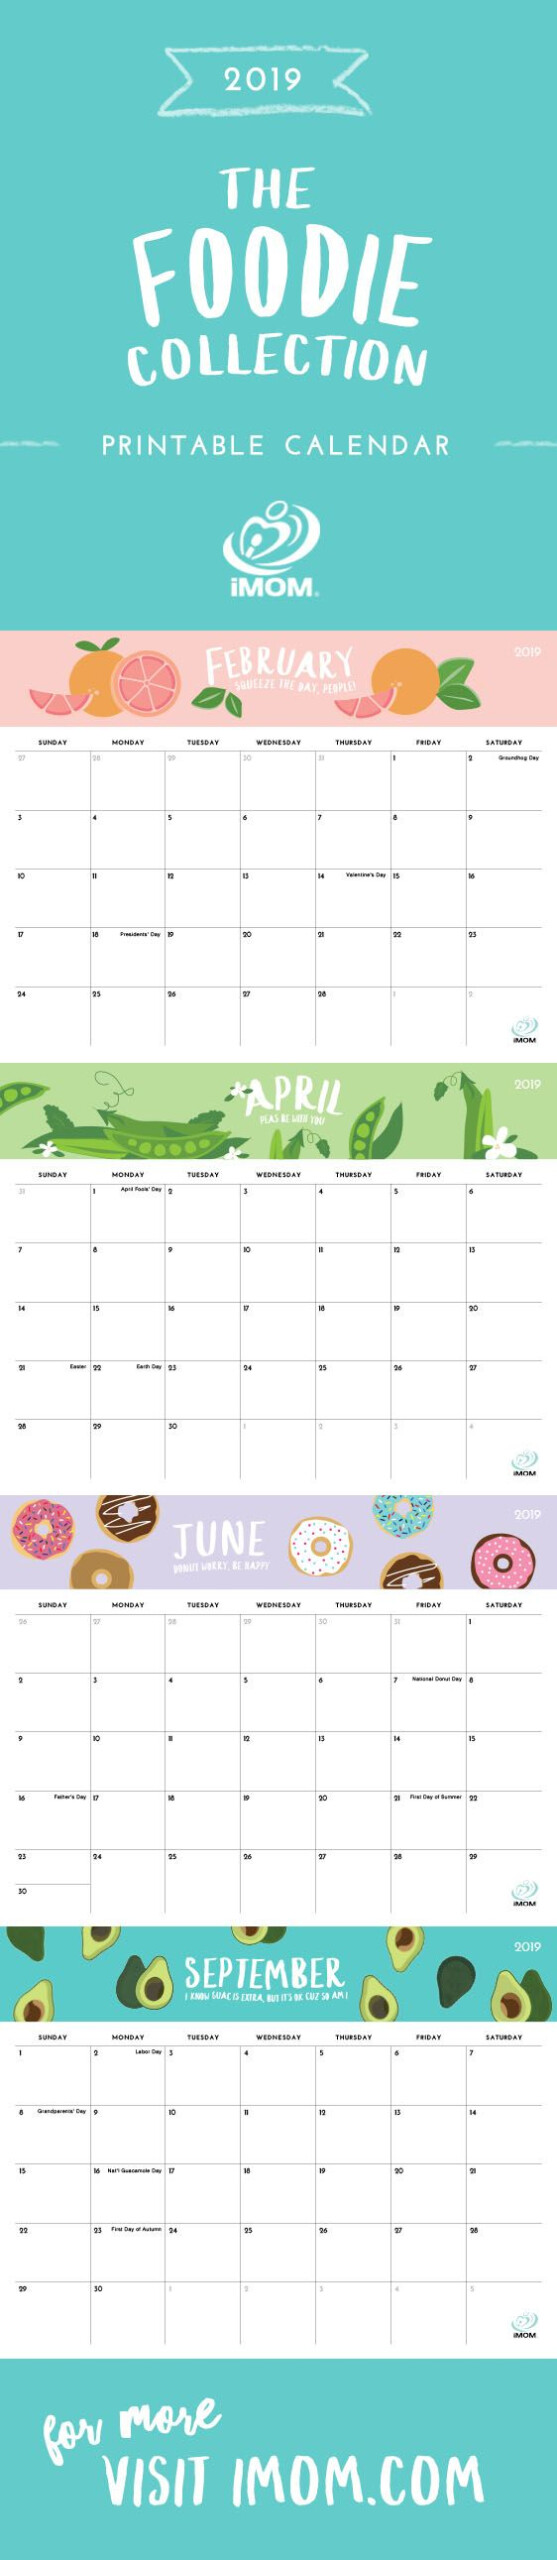 2020 And 2021 Foodie Printable Calendars For Moms - Imom